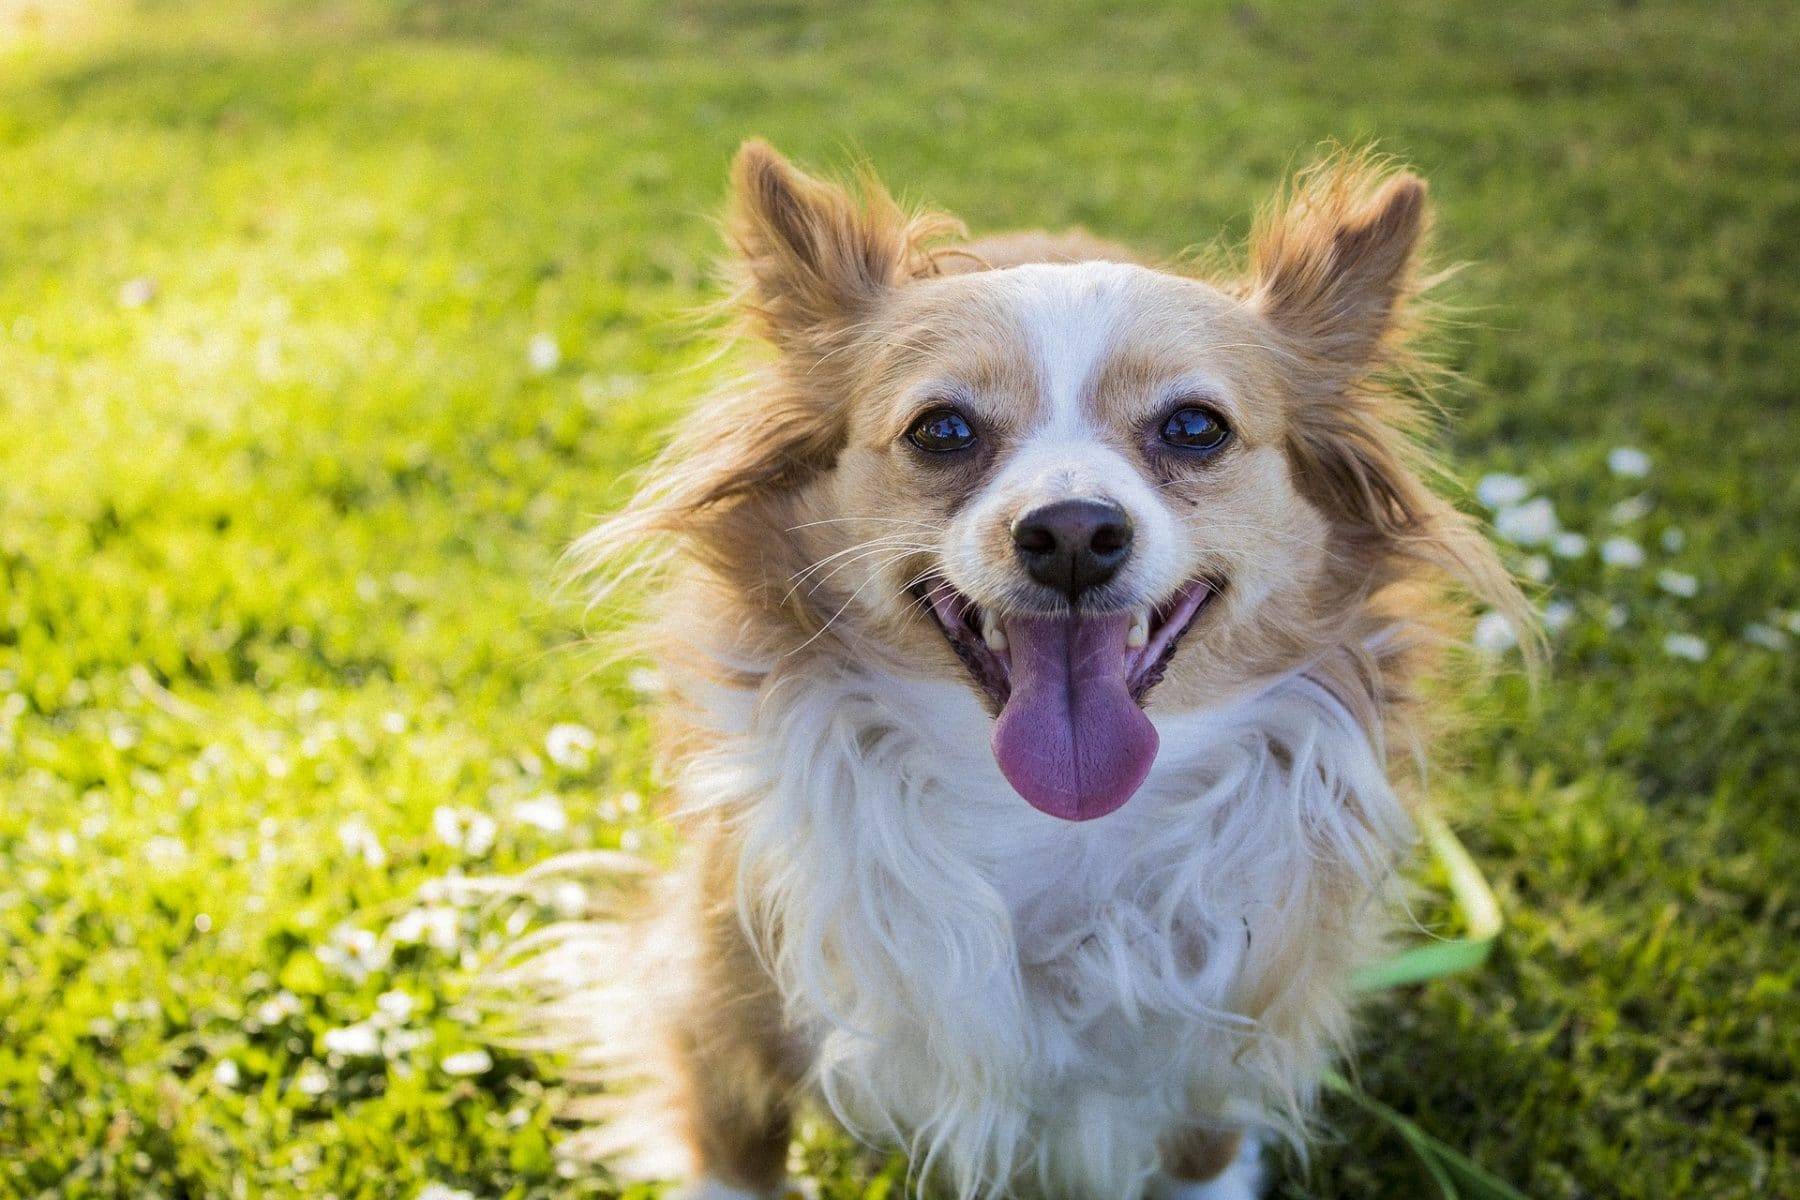 Long Haired Chihuahua Hair Cuts: A Guide to Grooming with